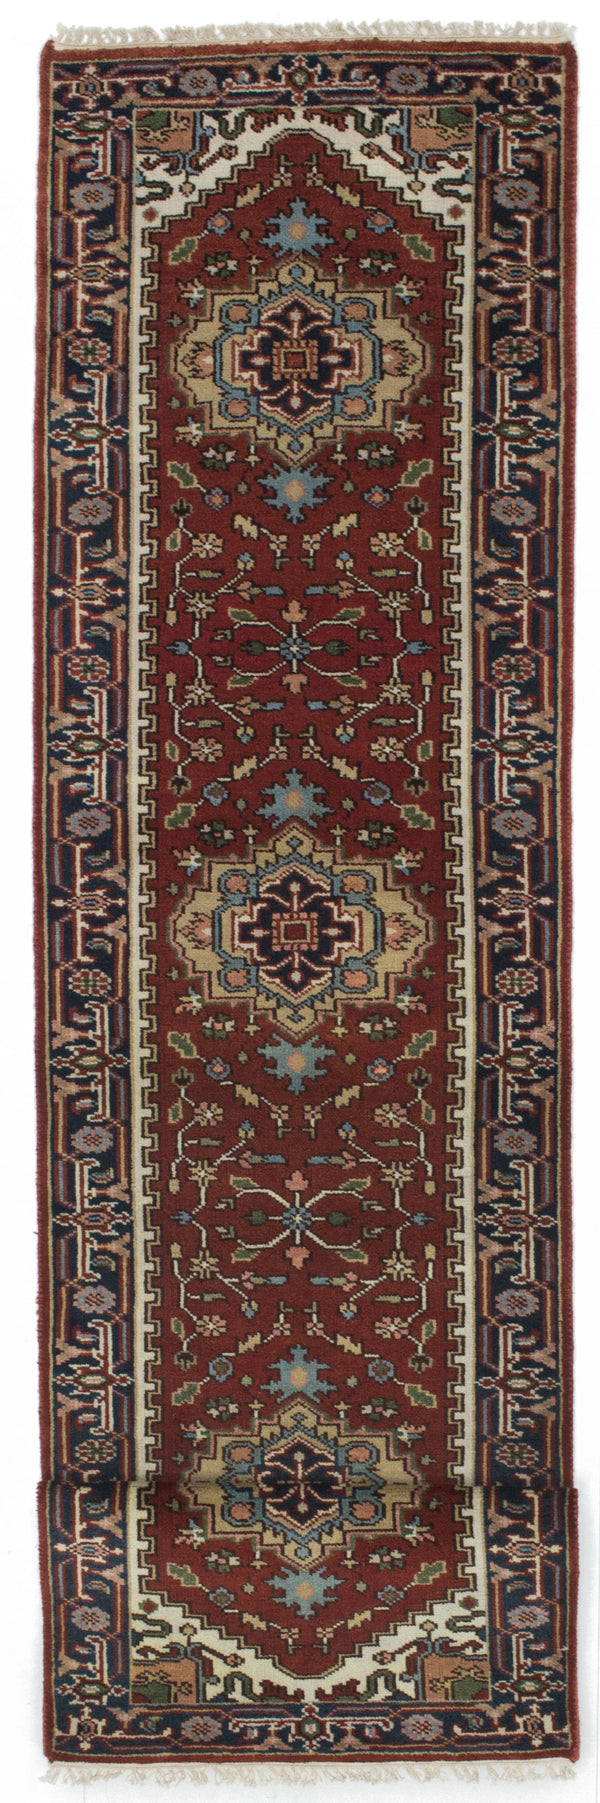 "Hand-knotted Indian Floral  Traditional Serapi-Heritage Runner rug  Dark Orange 2'8 x 11'11"" """